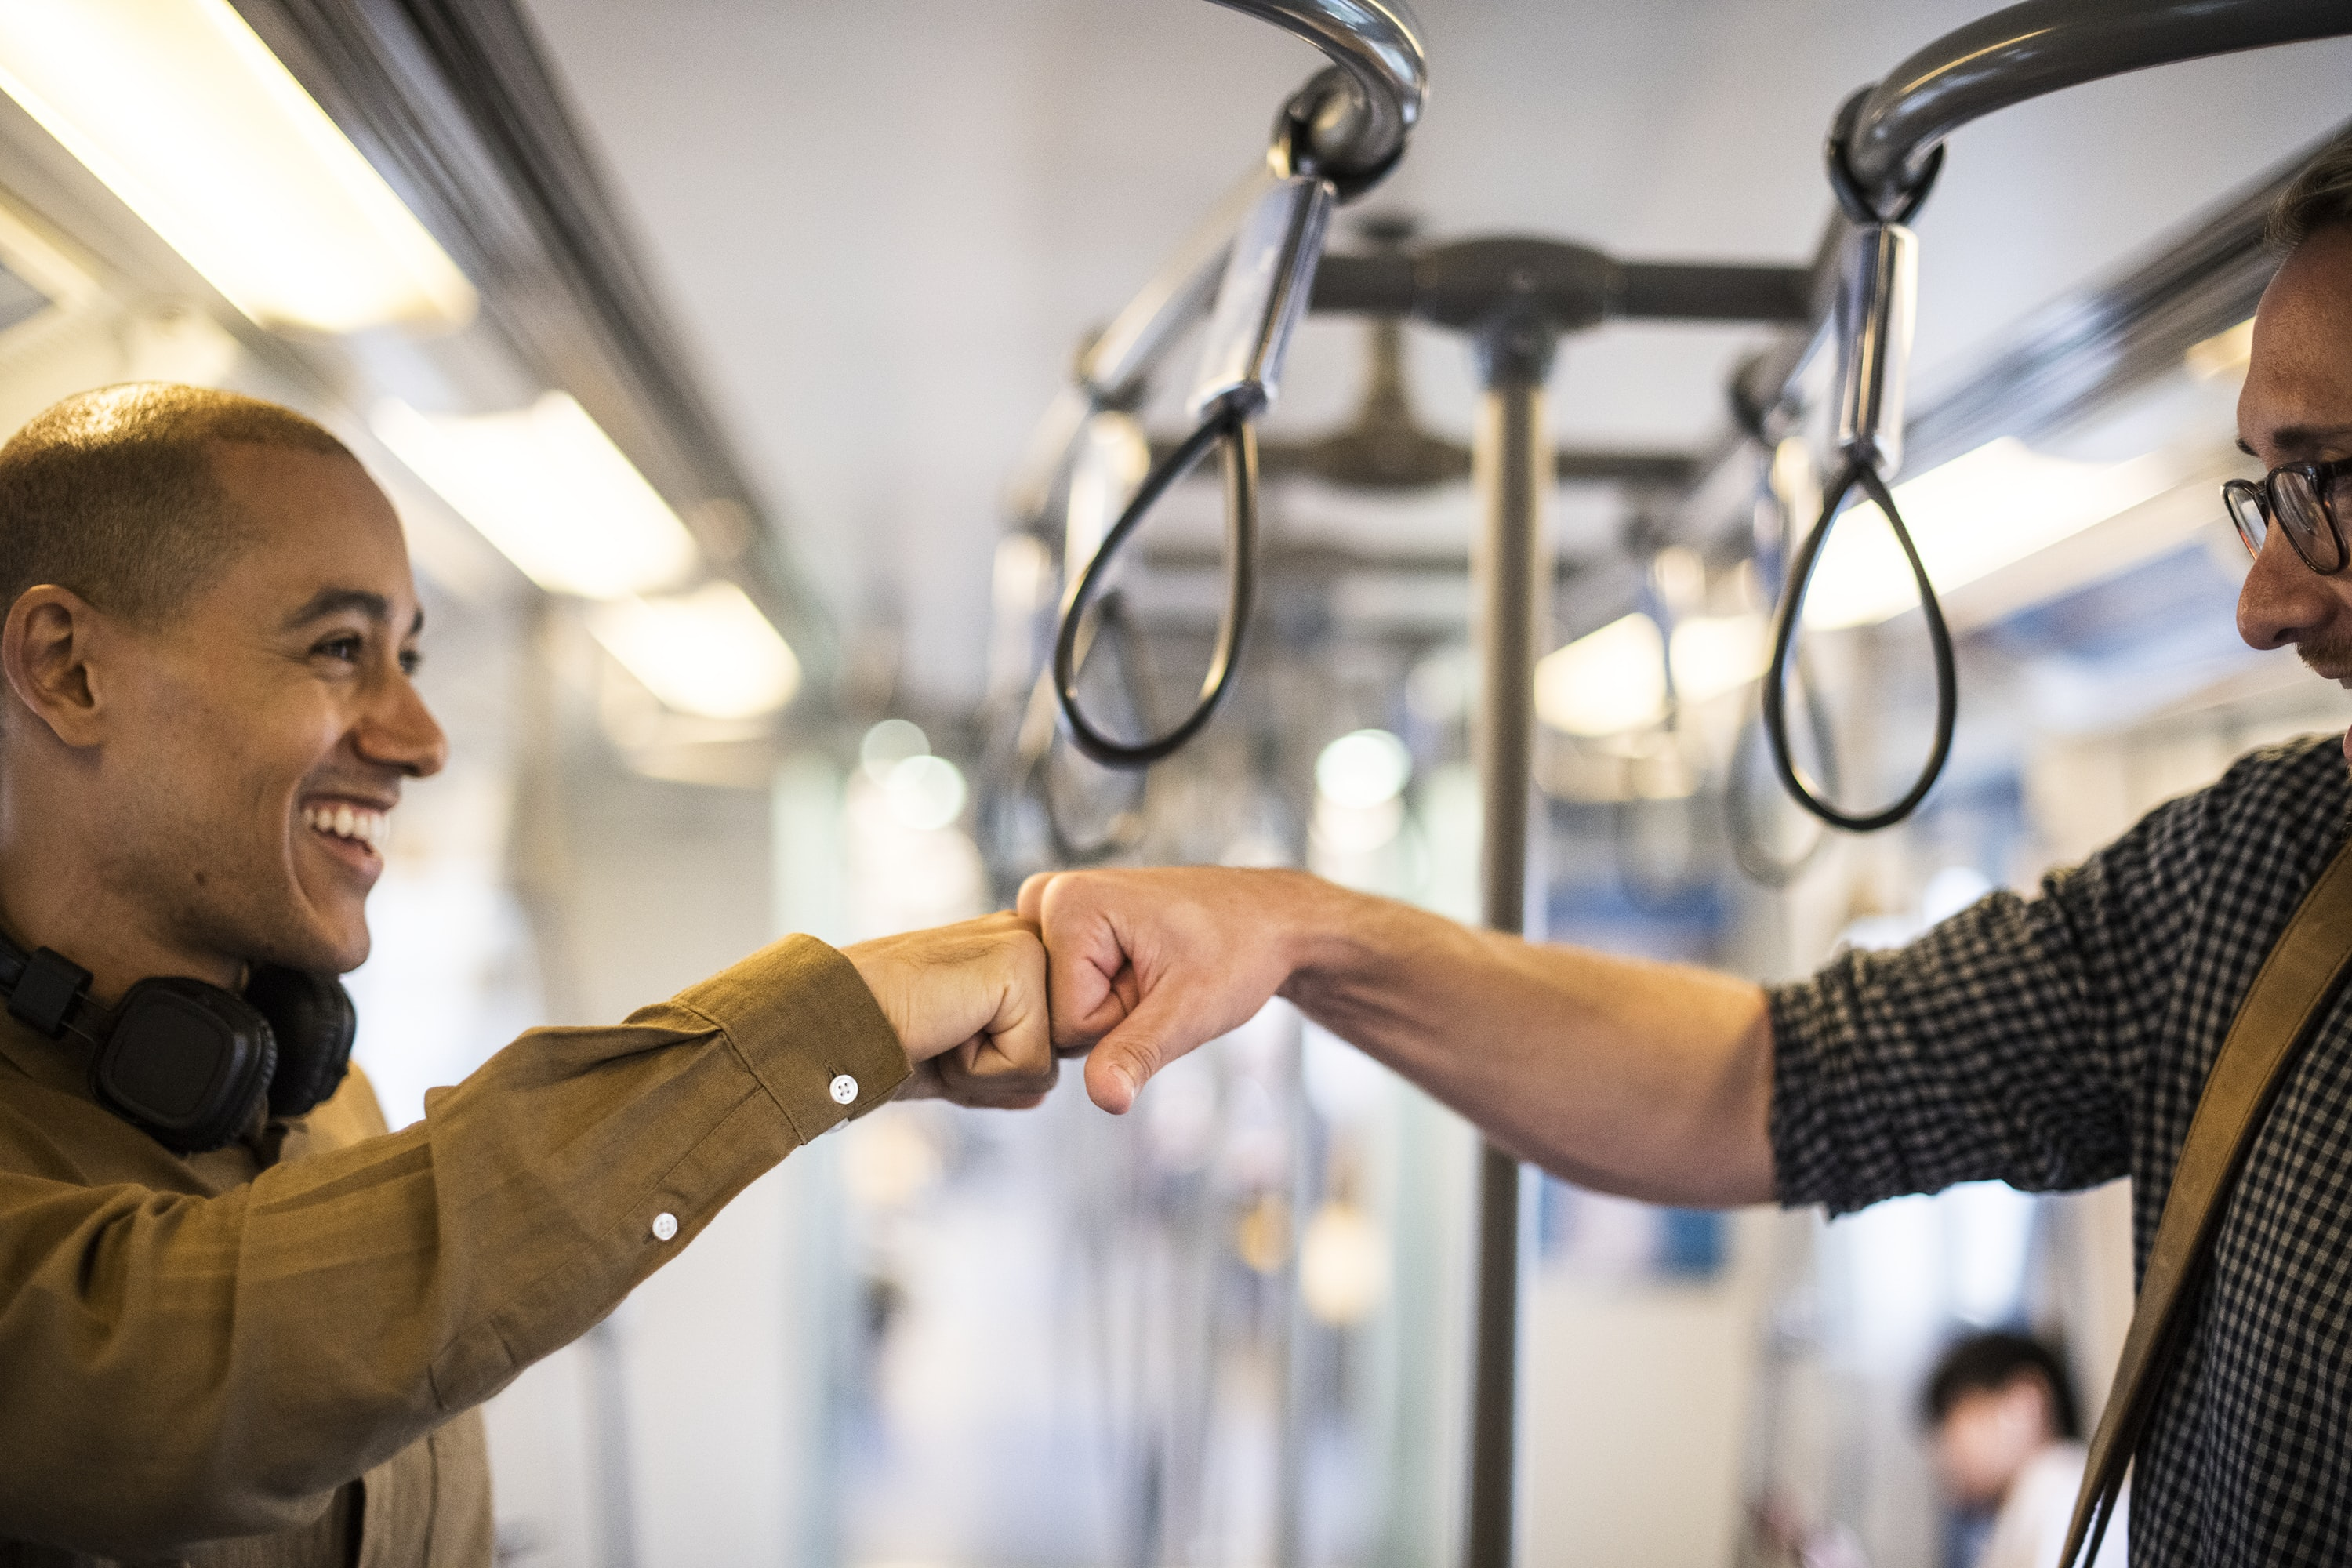 person fist bumping inside a train